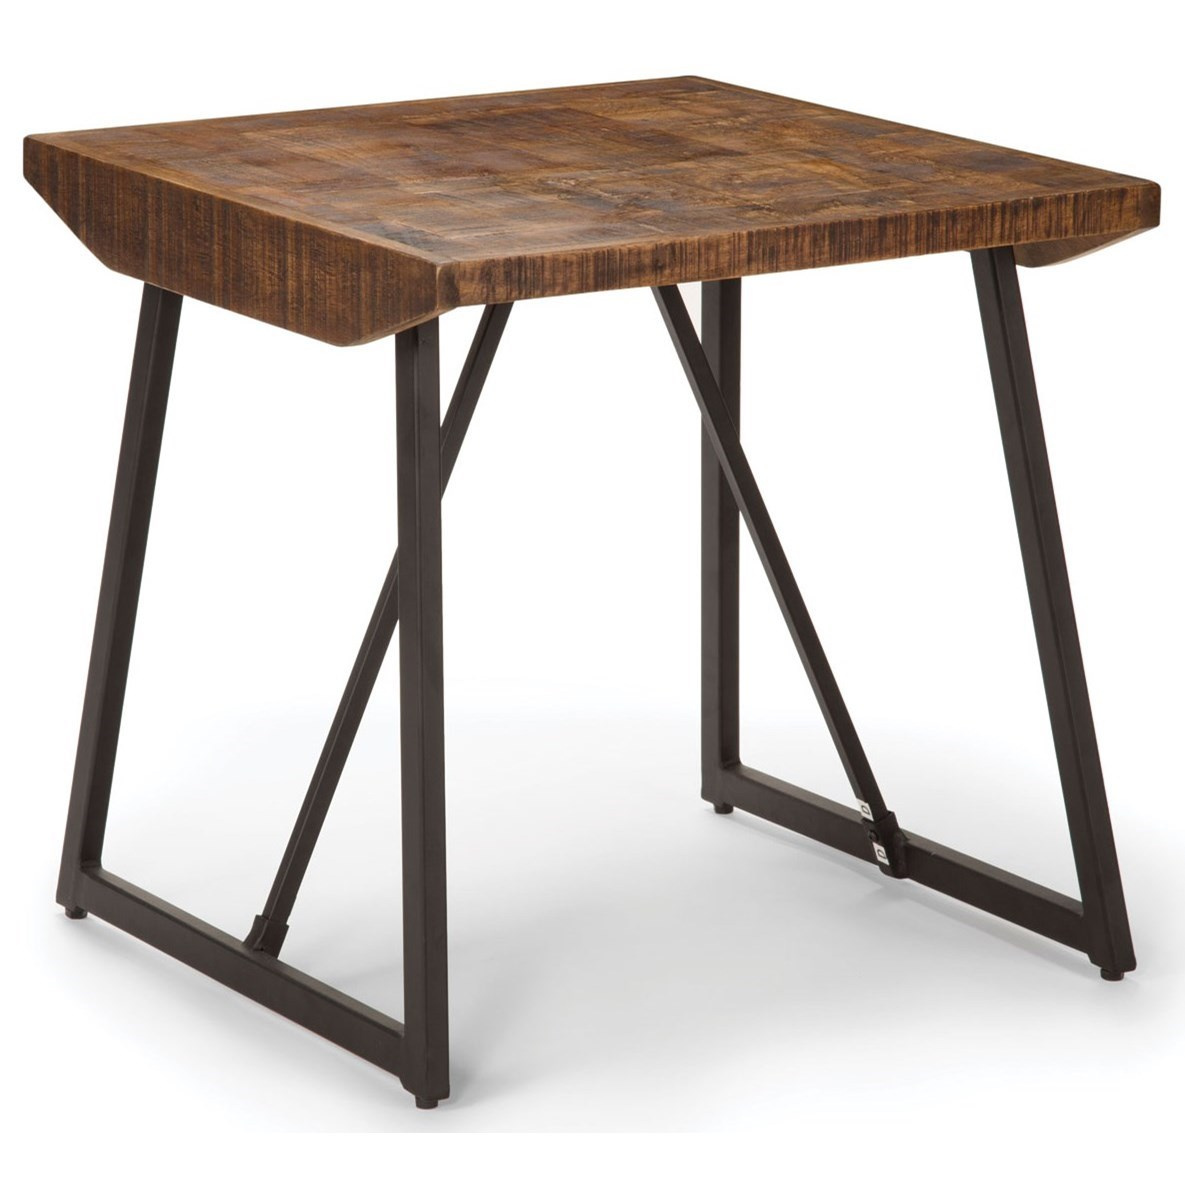 Rustic Wood End Table Walden Rustic Industrial End Table With Parquet Pattern Wood Top By Star At Efo Furniture Outlet